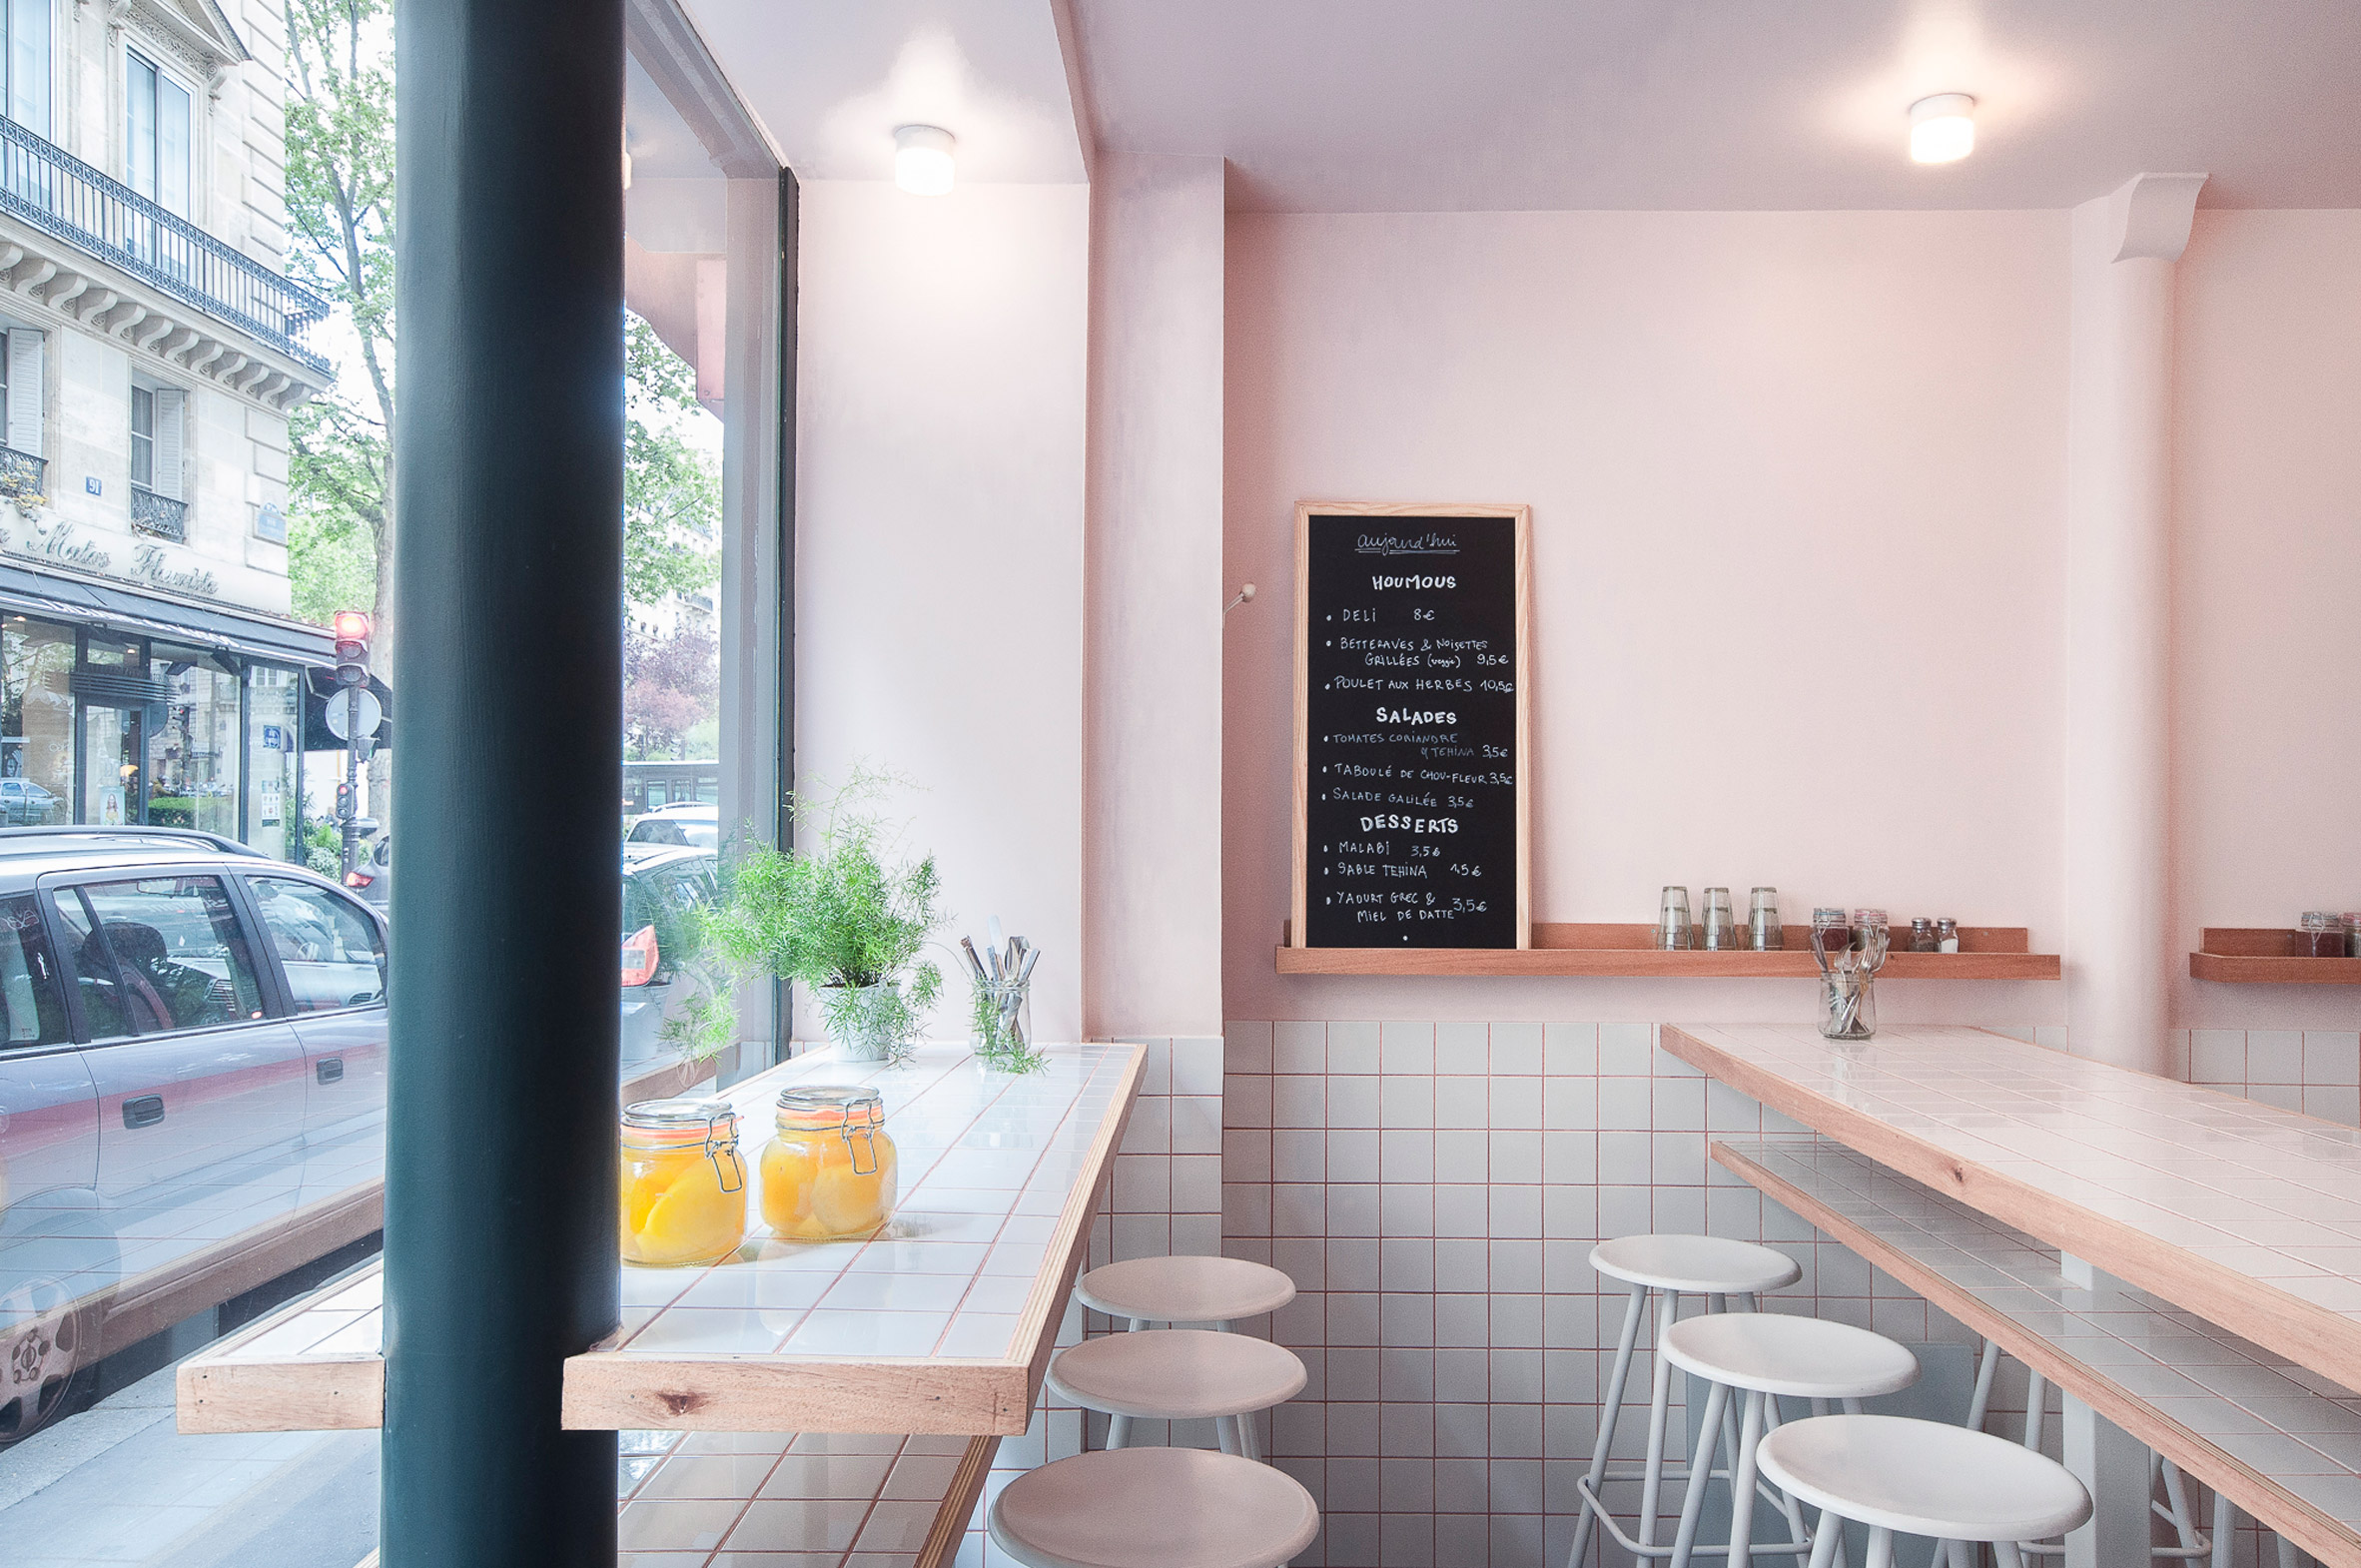 """Joyful chaos"" inspires design of Yafo hummus deli in Paris"